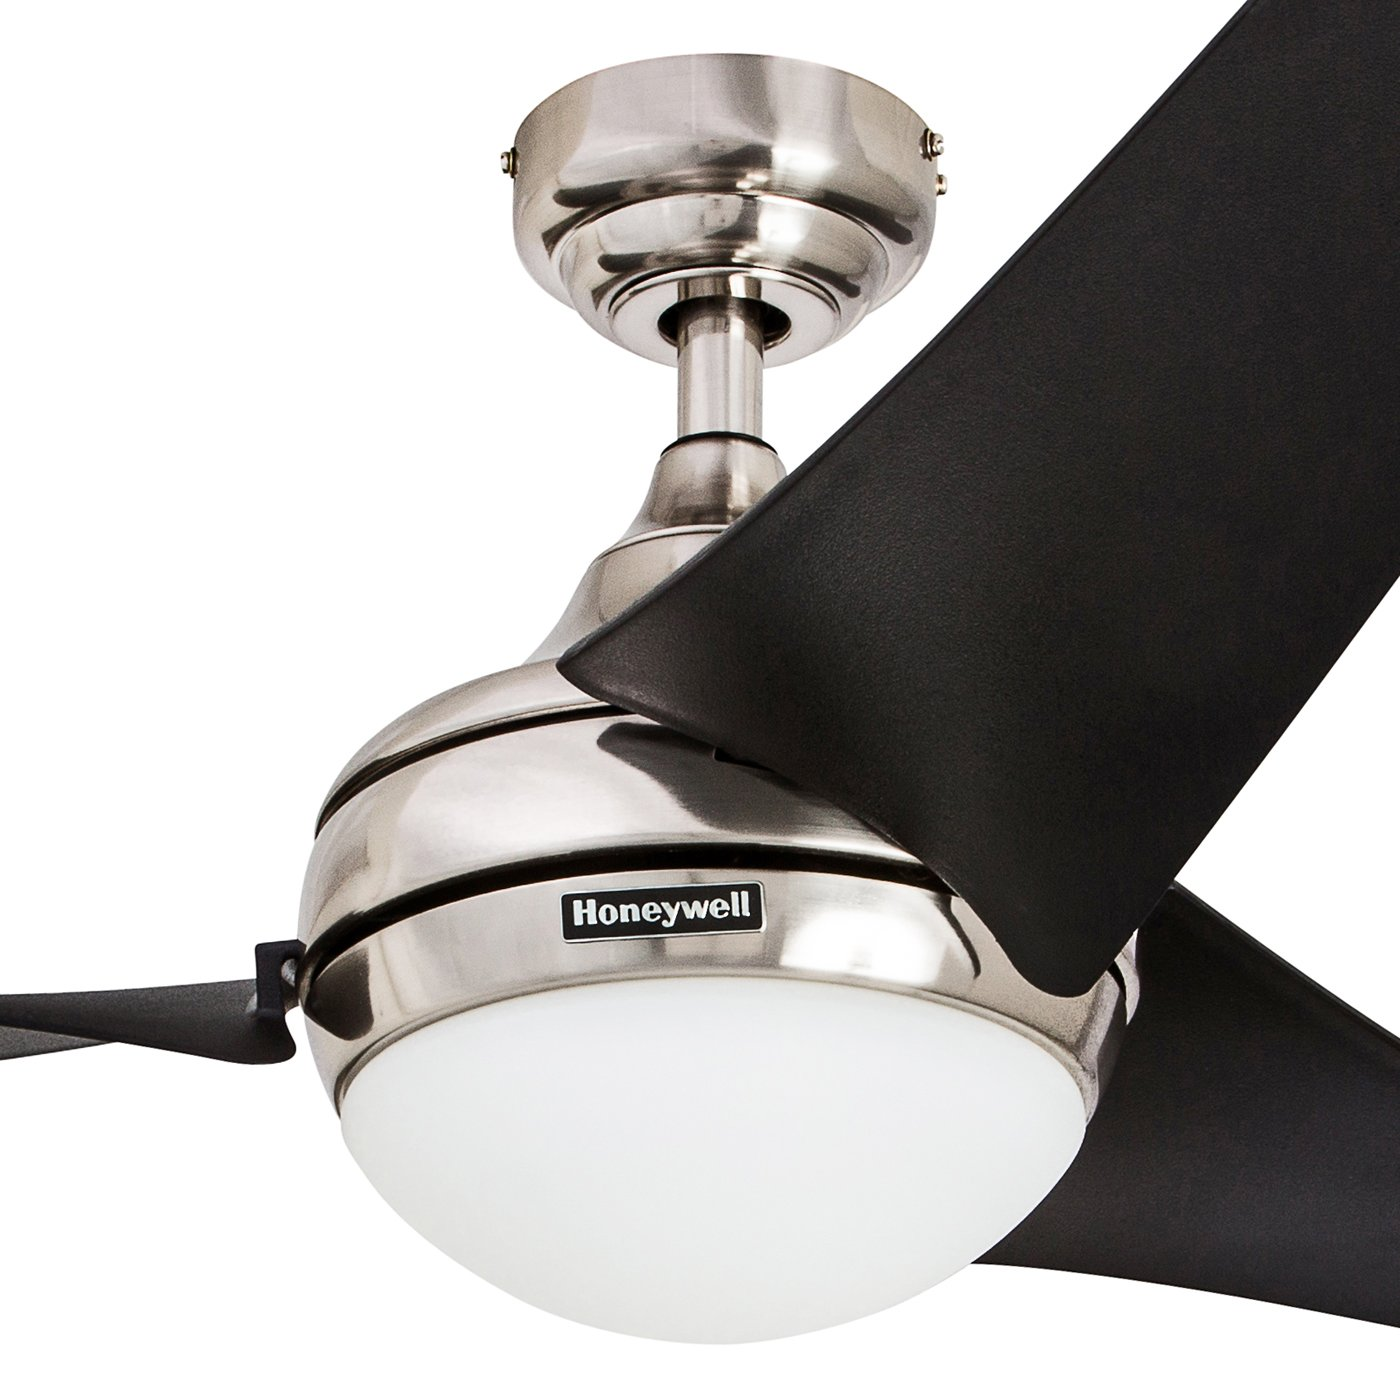 Honeywell Ceiling Fans Rio 54 Inch Ceiling Fan with